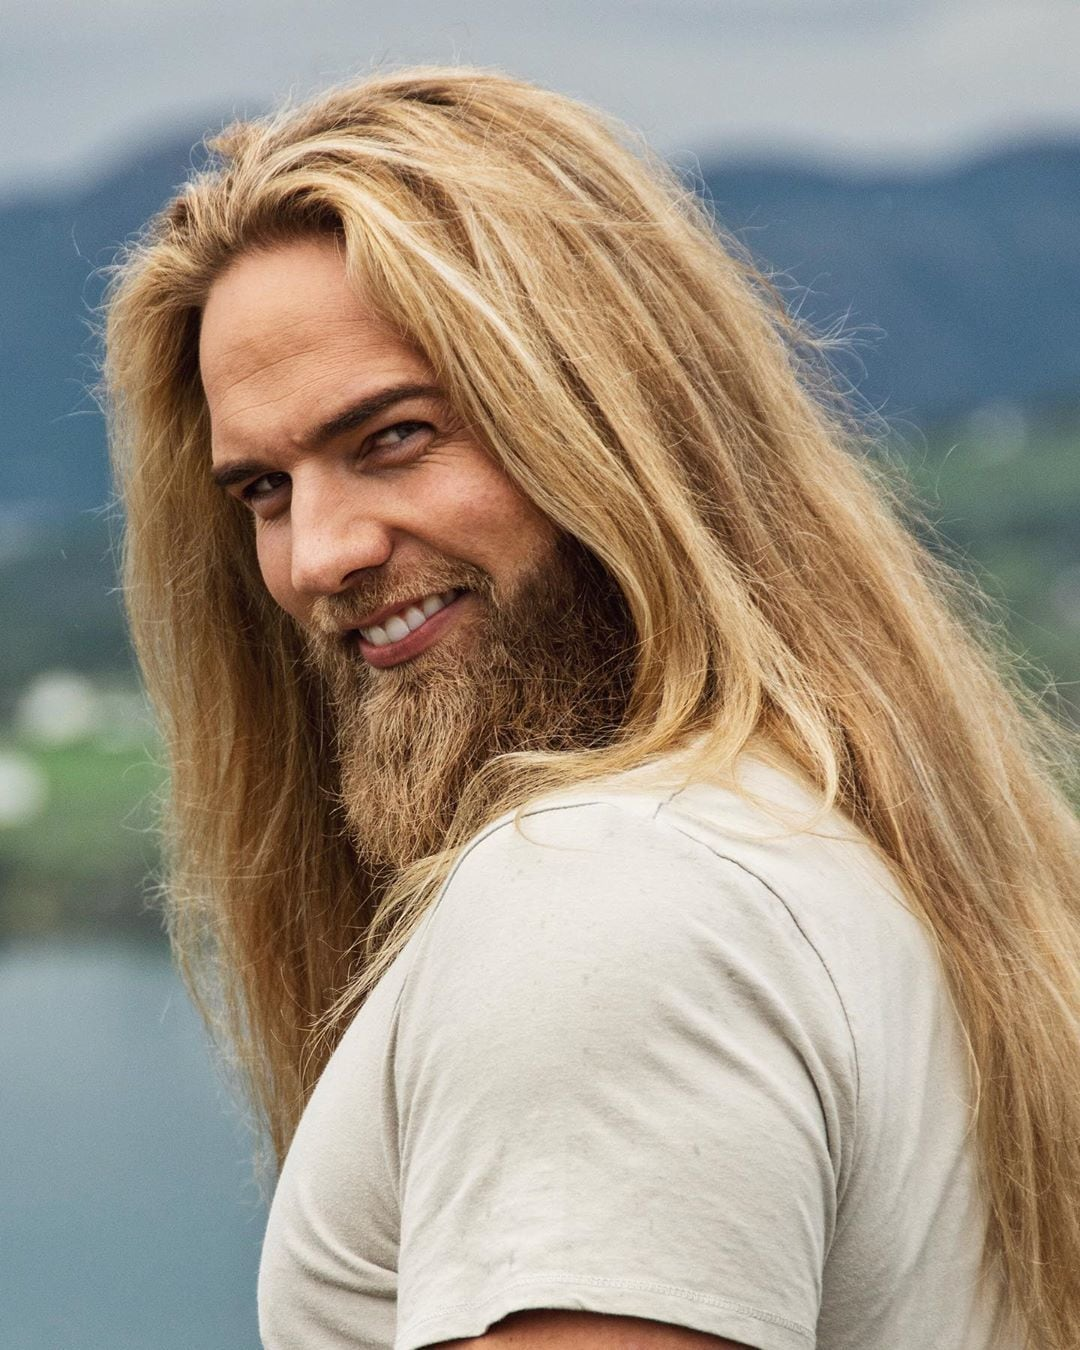 25 Men With Long Hair All The Looks You Need To Know